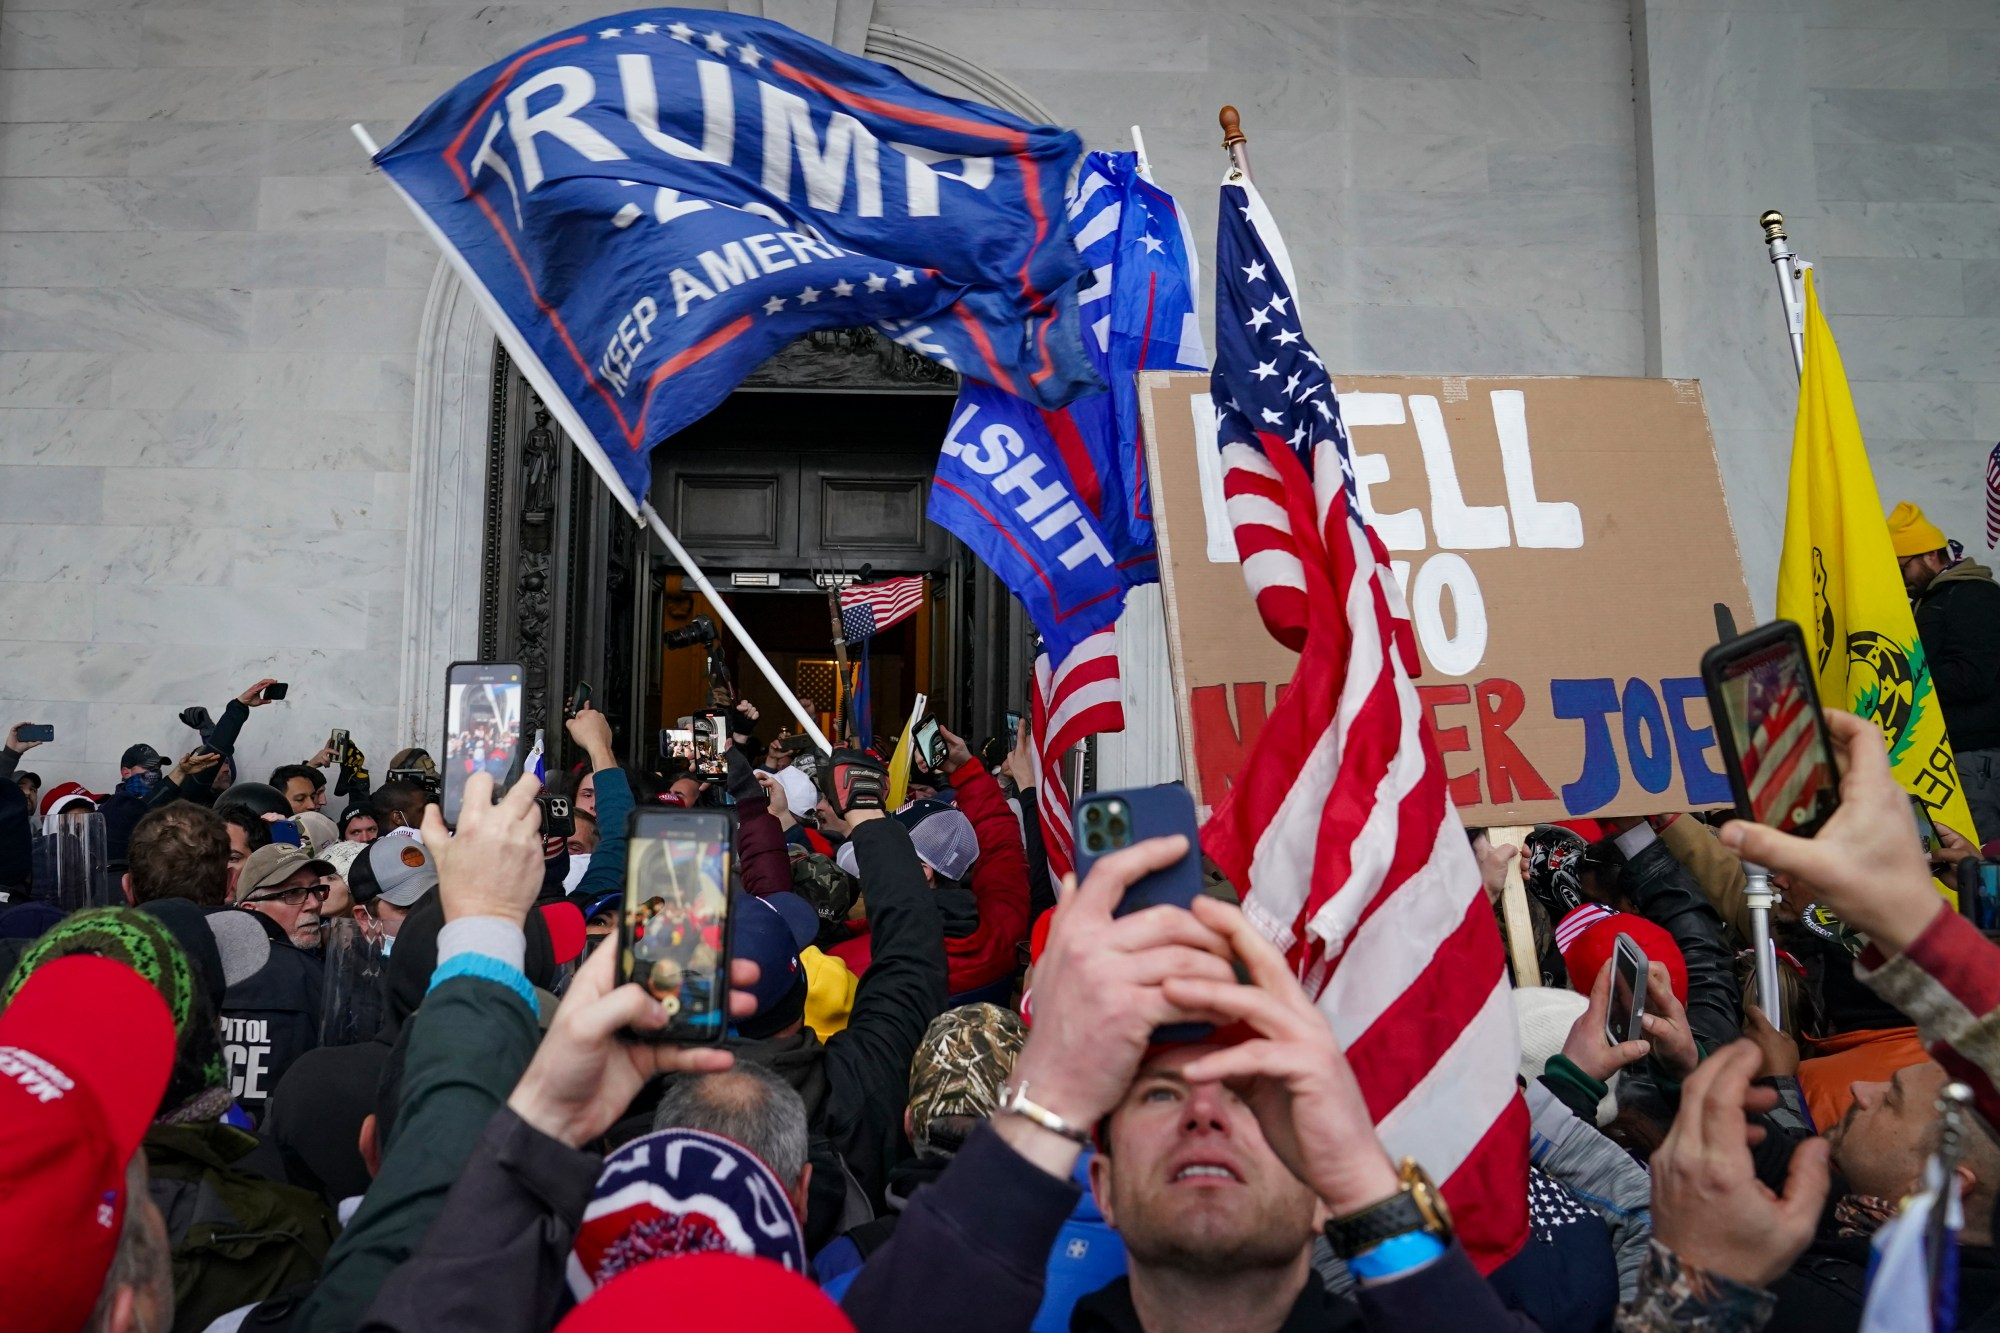 In this Jan. 6, 2021, file photo, Trump supporters gather outside the Capitol in Washington. Some people charged with storming the U.S. Capitol on Jan. 6 are claiming they were only there to record history as journalists, not join a deadly insurrection. Experts say it's unlikely that they can mount a viable defense on First Amendment free speech grounds, but some appear intent on trying. (AP Photo/John Minchillo, File)